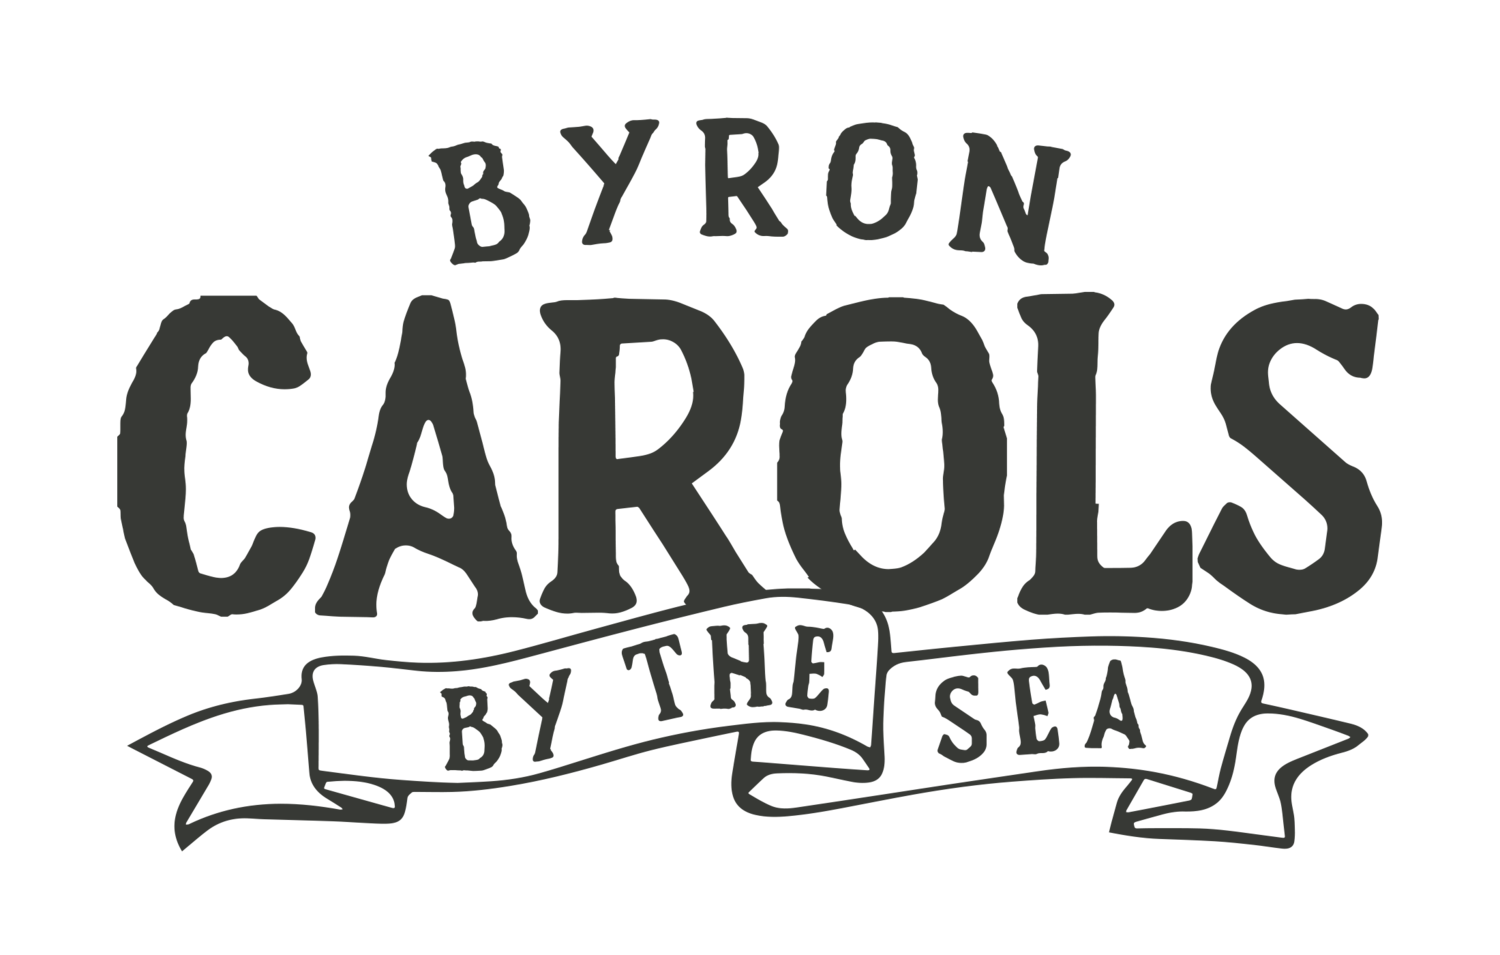 Byron Carols